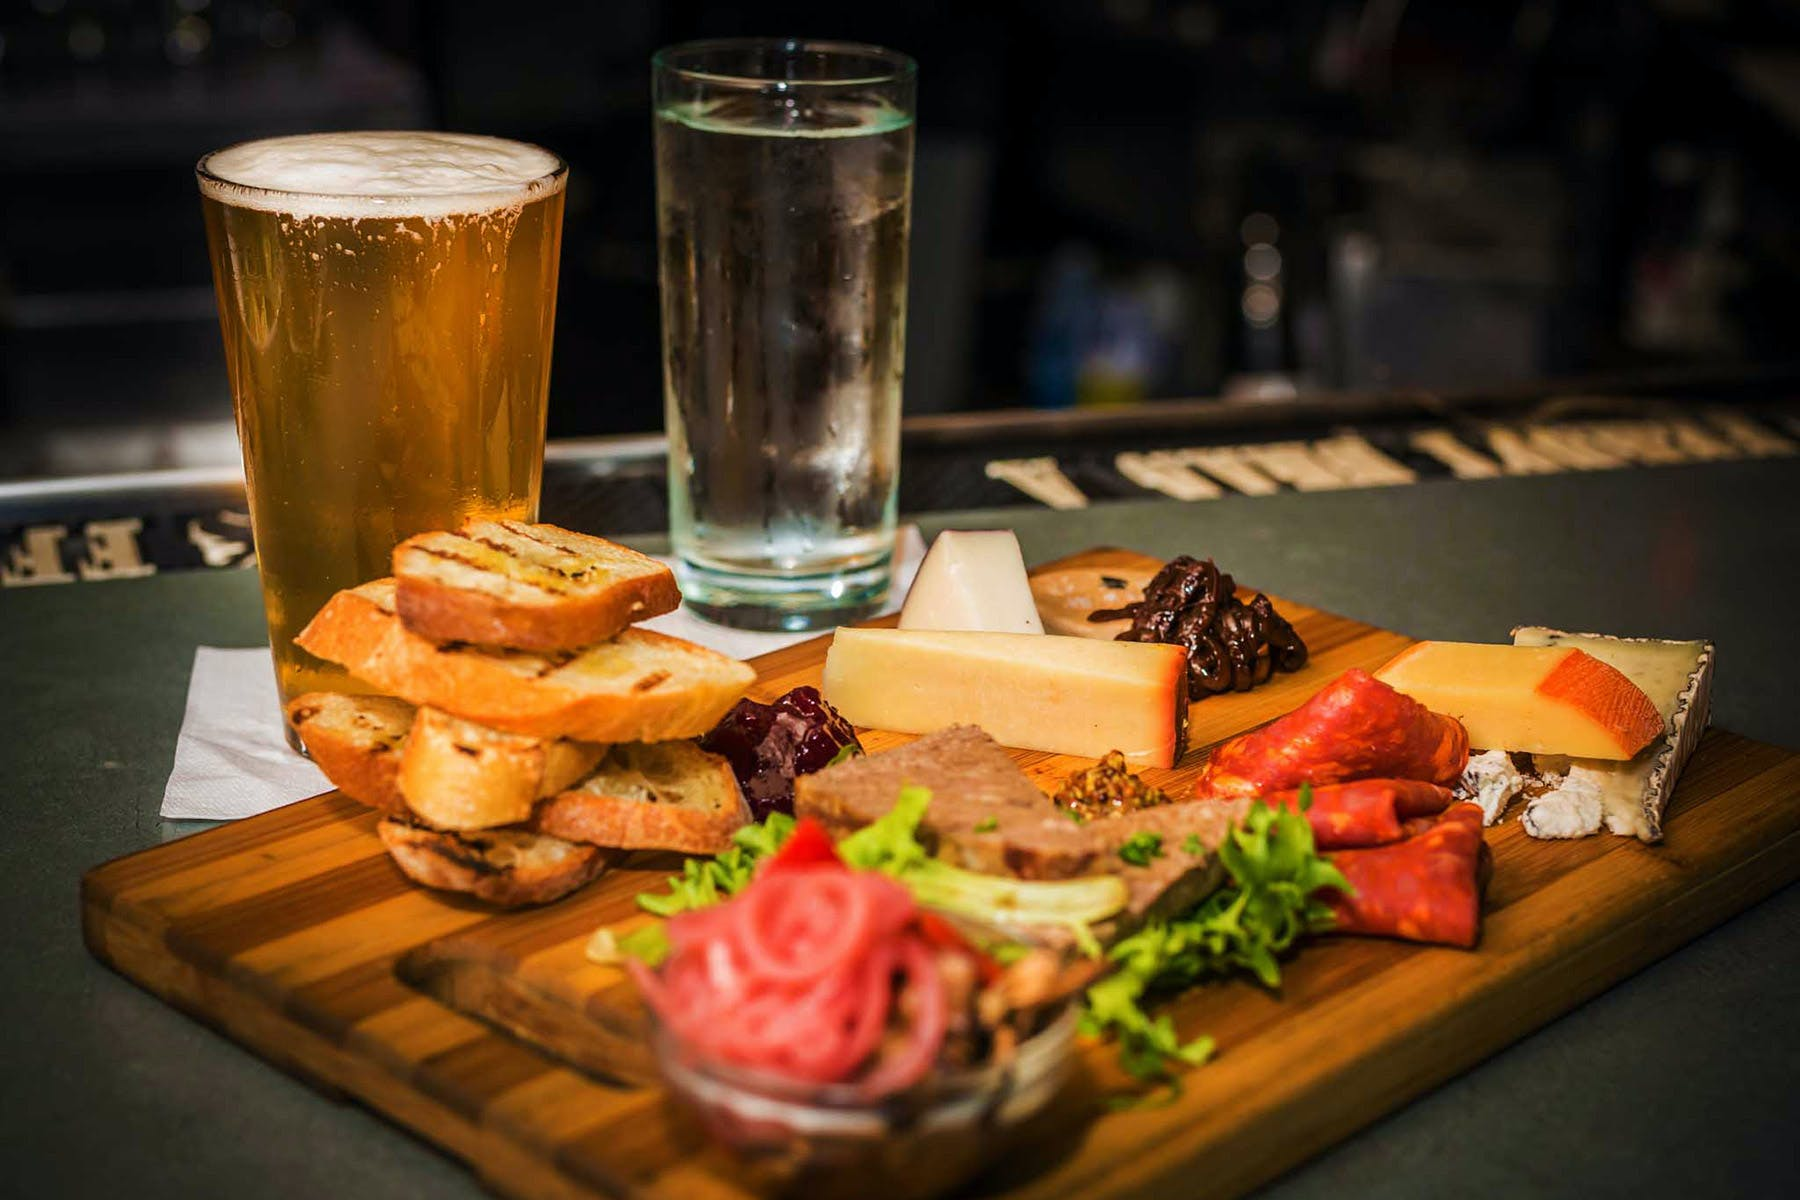 a glass of beer on a wooden cutting board